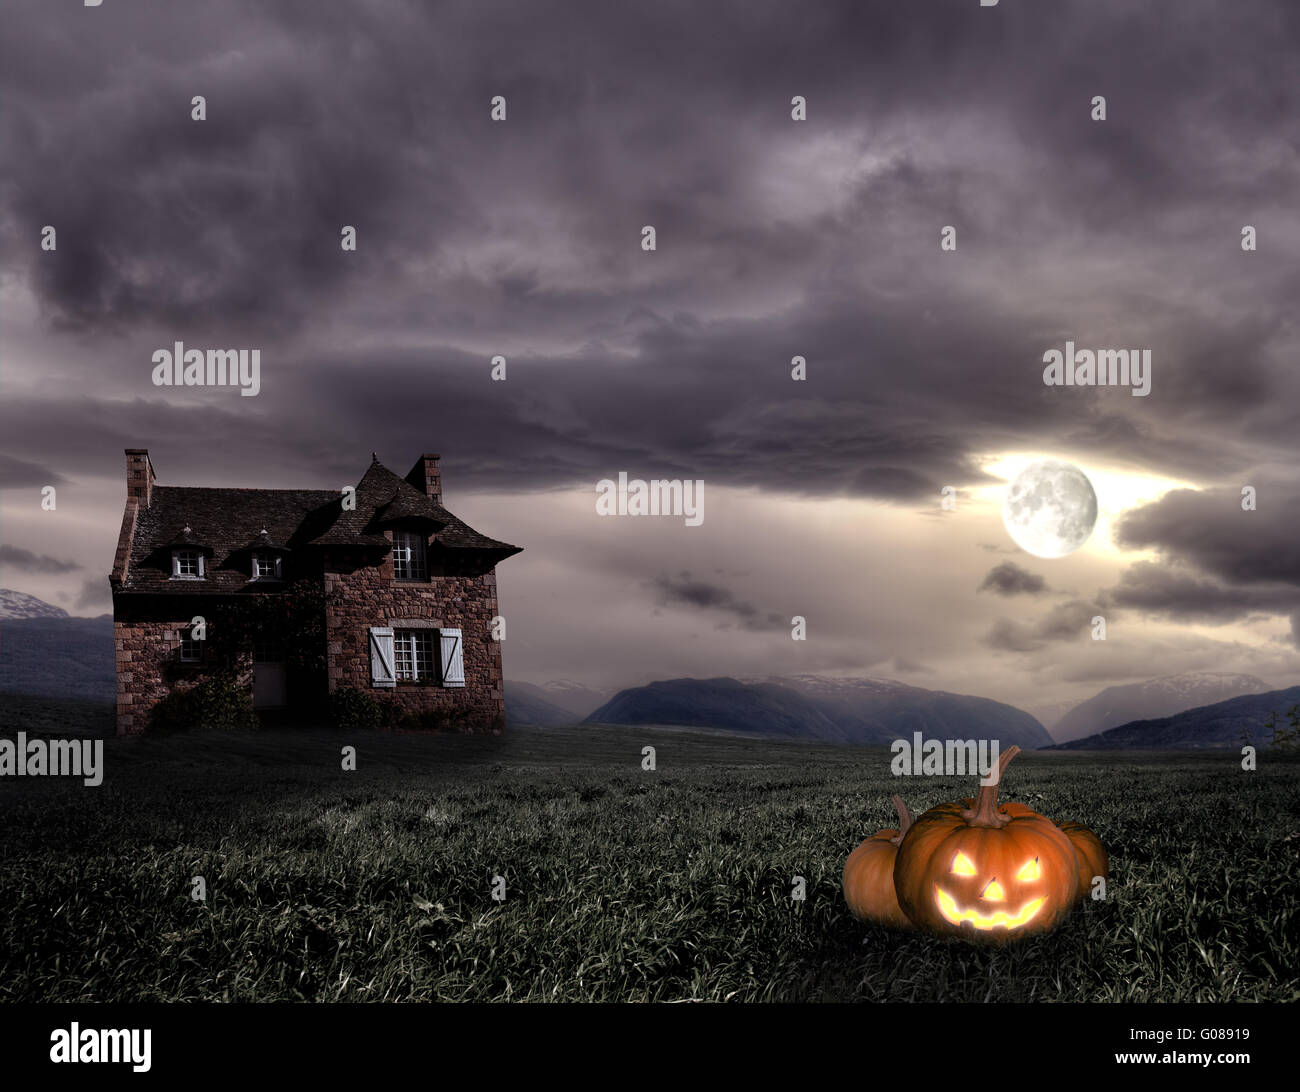 Apocalyptic Halloween scenery with old house and pumpkin - Stock Image